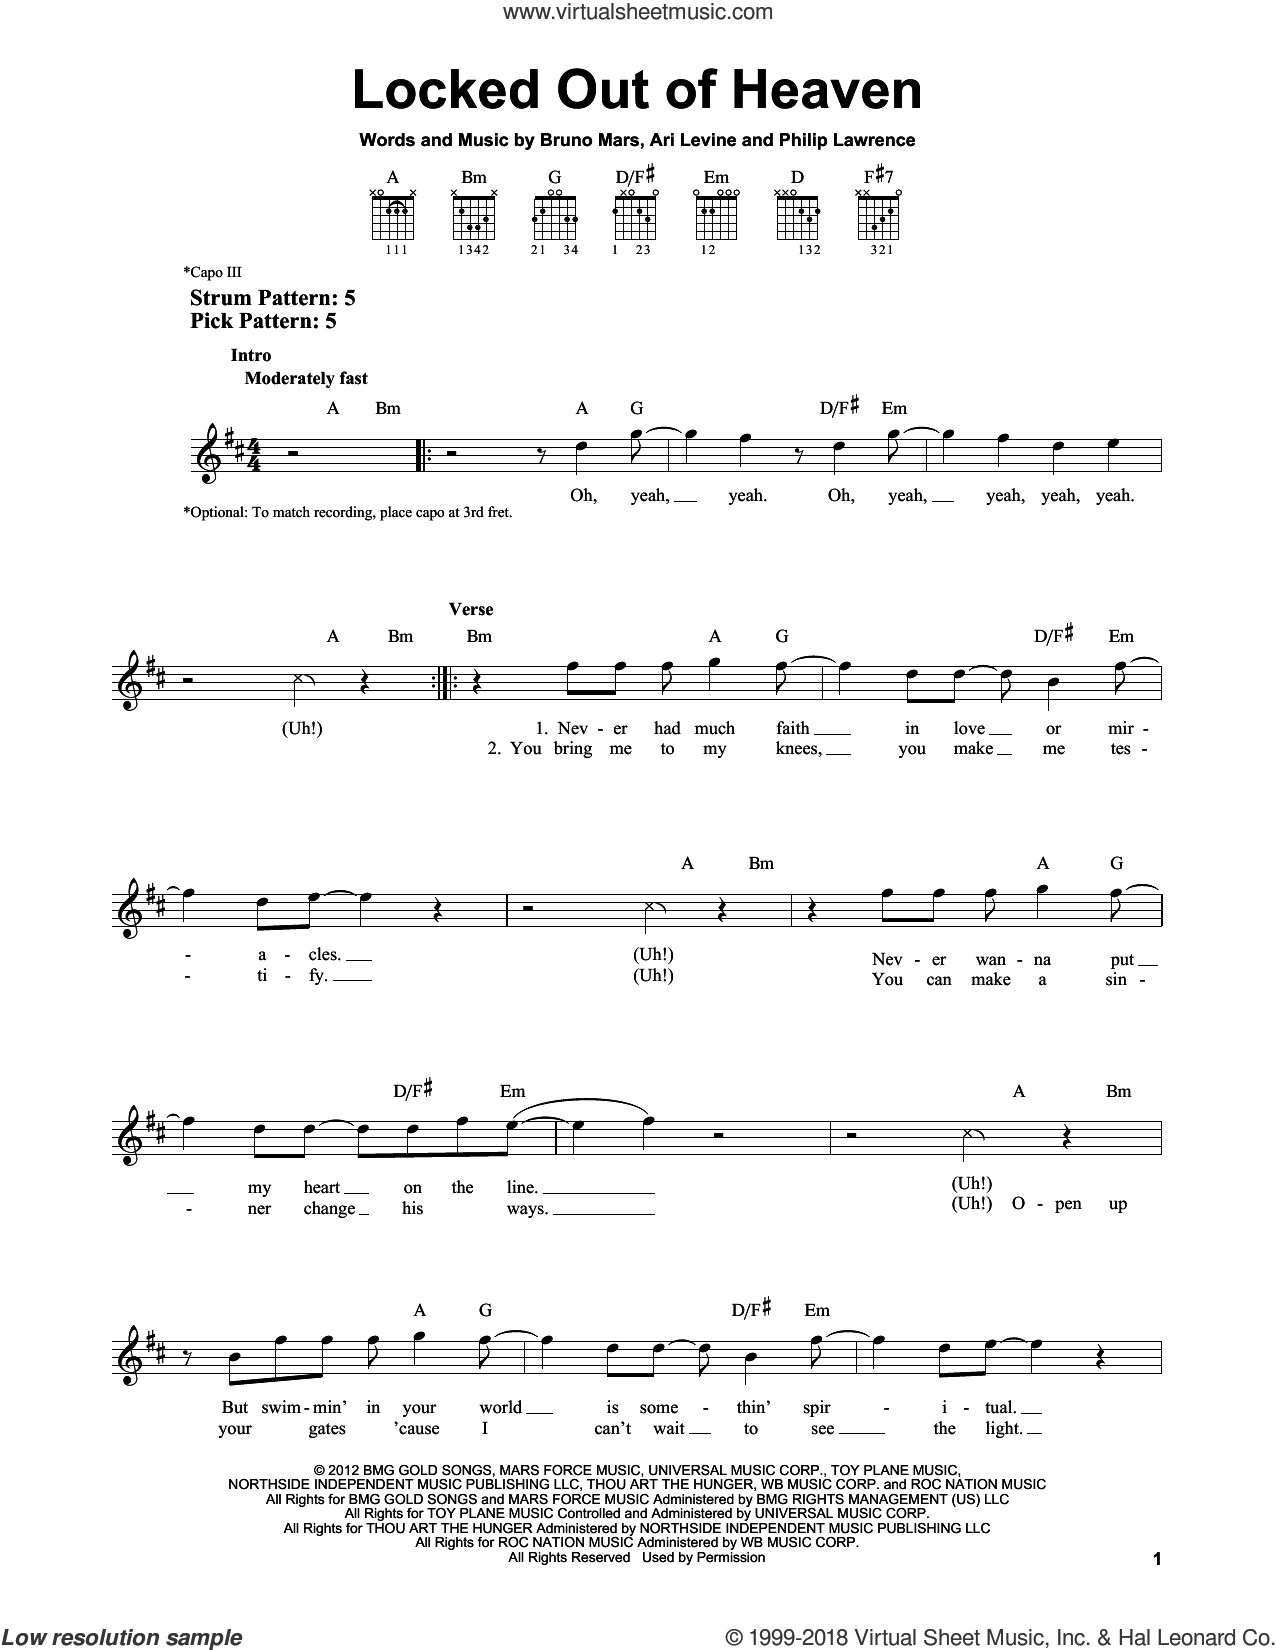 Locked Out Of Heaven sheet music for guitar solo (chords) by Philip Lawrence, Ari Levine and Bruno Mars. Score Image Preview.